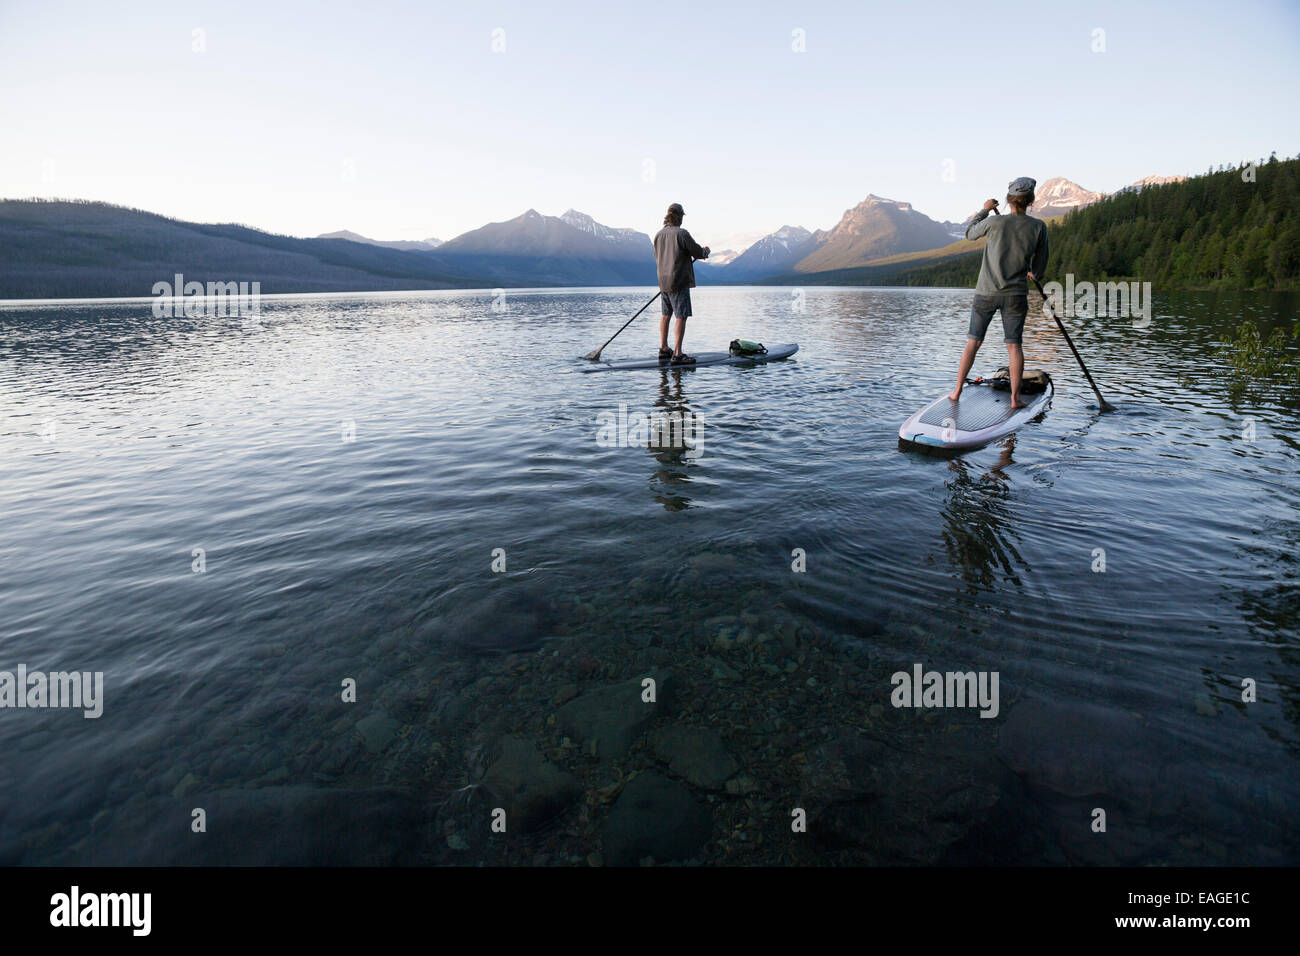 A man and woman stand up paddle boards (SUP) on Lake McDonald in Glacier National Park. Stock Photo